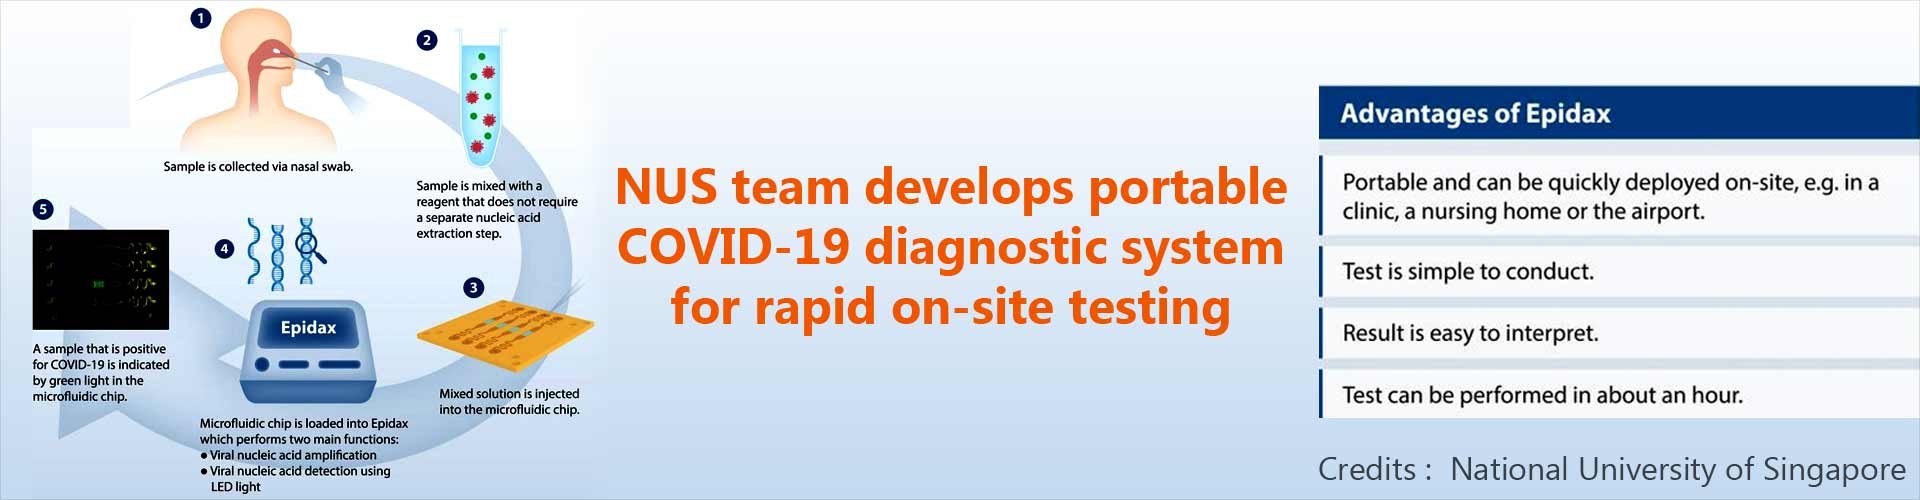 Portable COVID-19 Diagnostic System Developed for Rapid On-site Testing